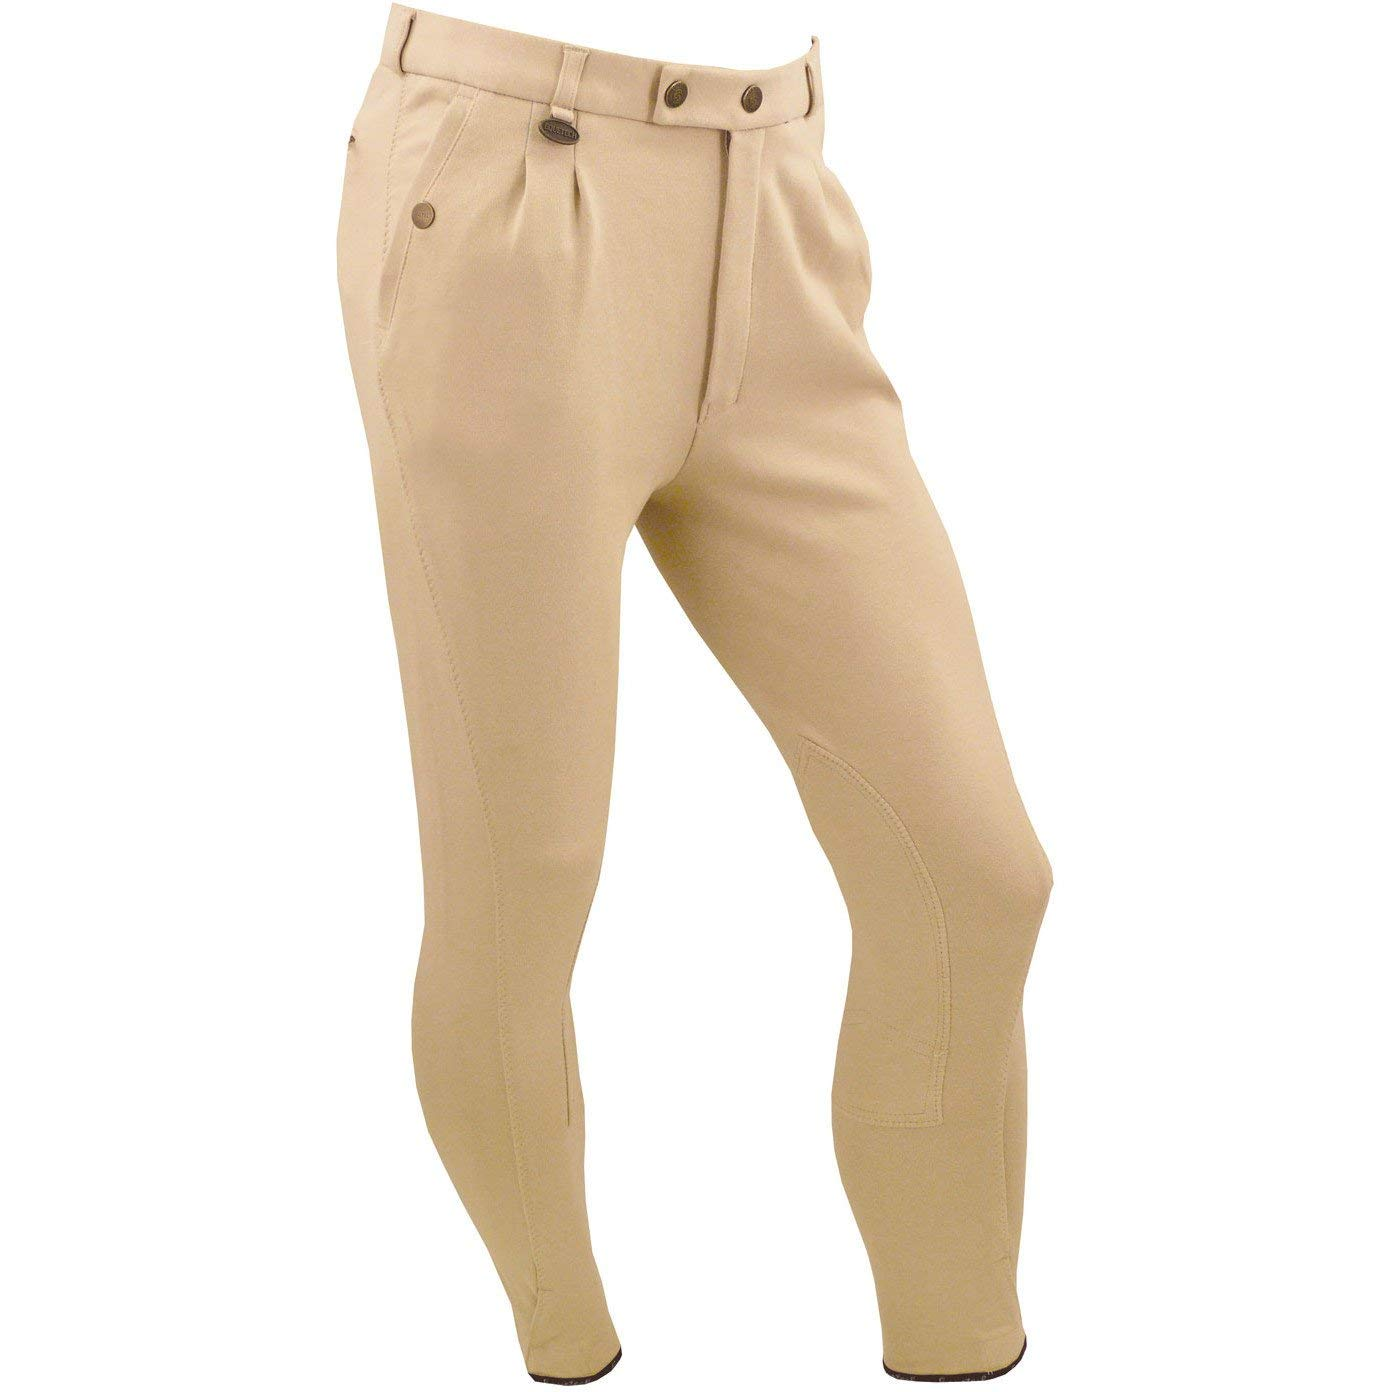 Equetech Mens Casual Breeches - Beige